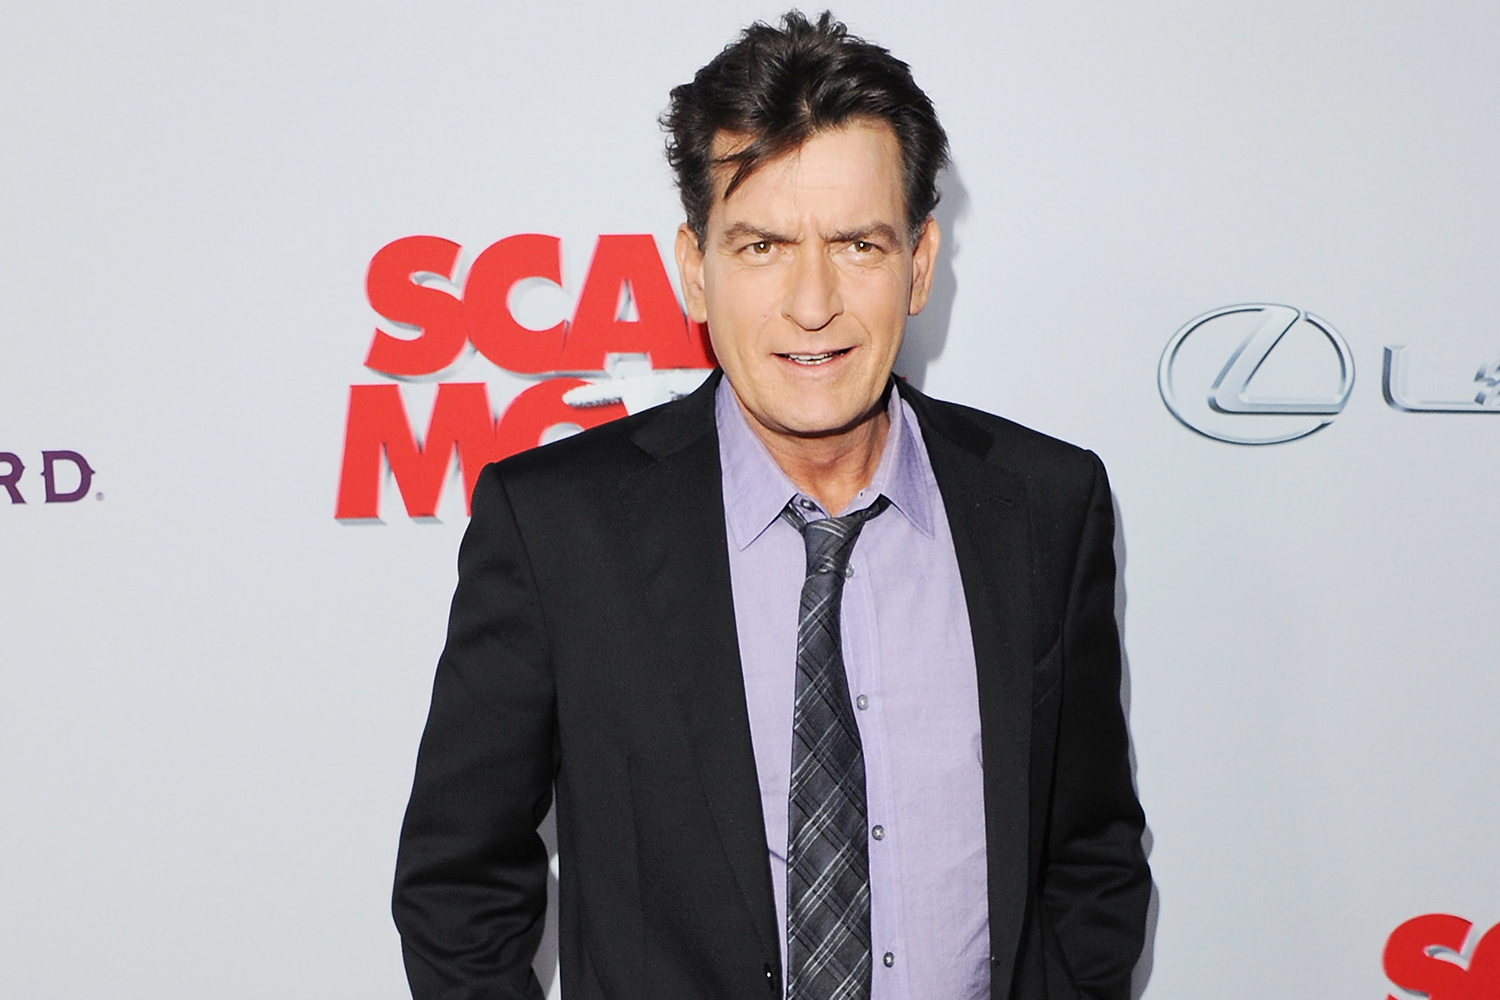 Charlie Sheen Denies Accusations He Sexually Assaulted Corey Haim